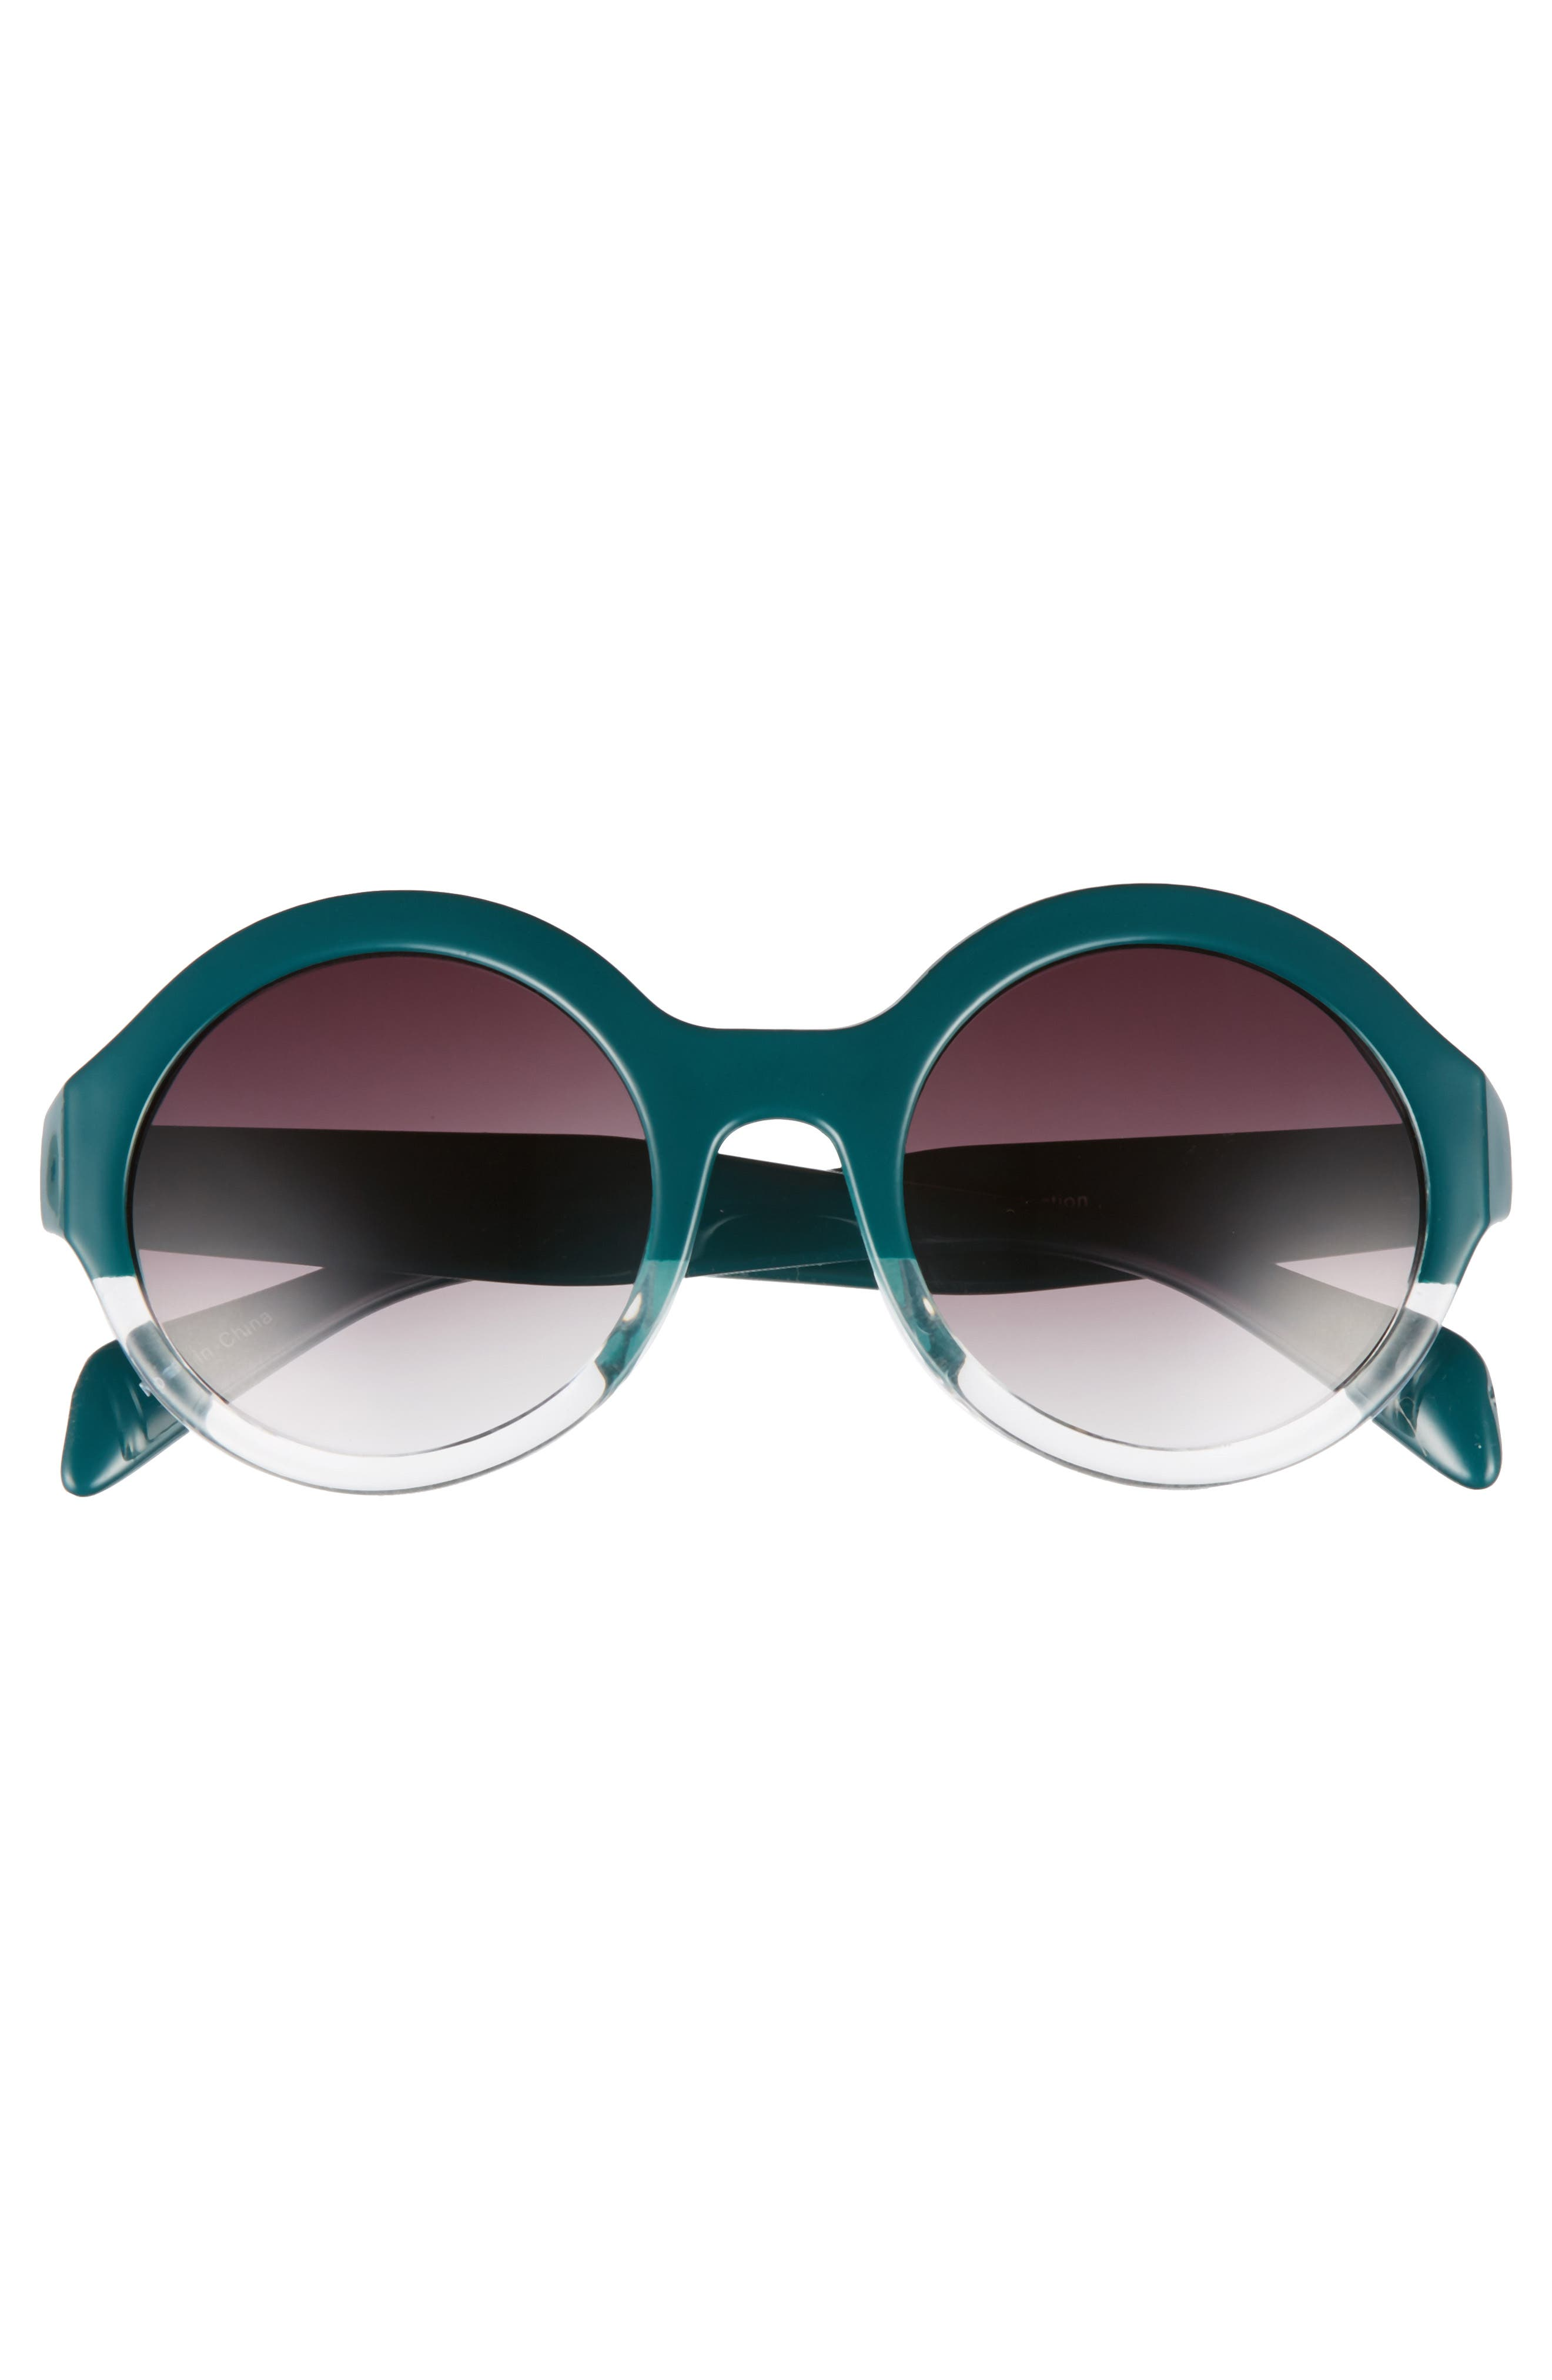 50mm Round 2 Tone Sunglasses,                             Alternate thumbnail 3, color,                             Emerald/ Clear